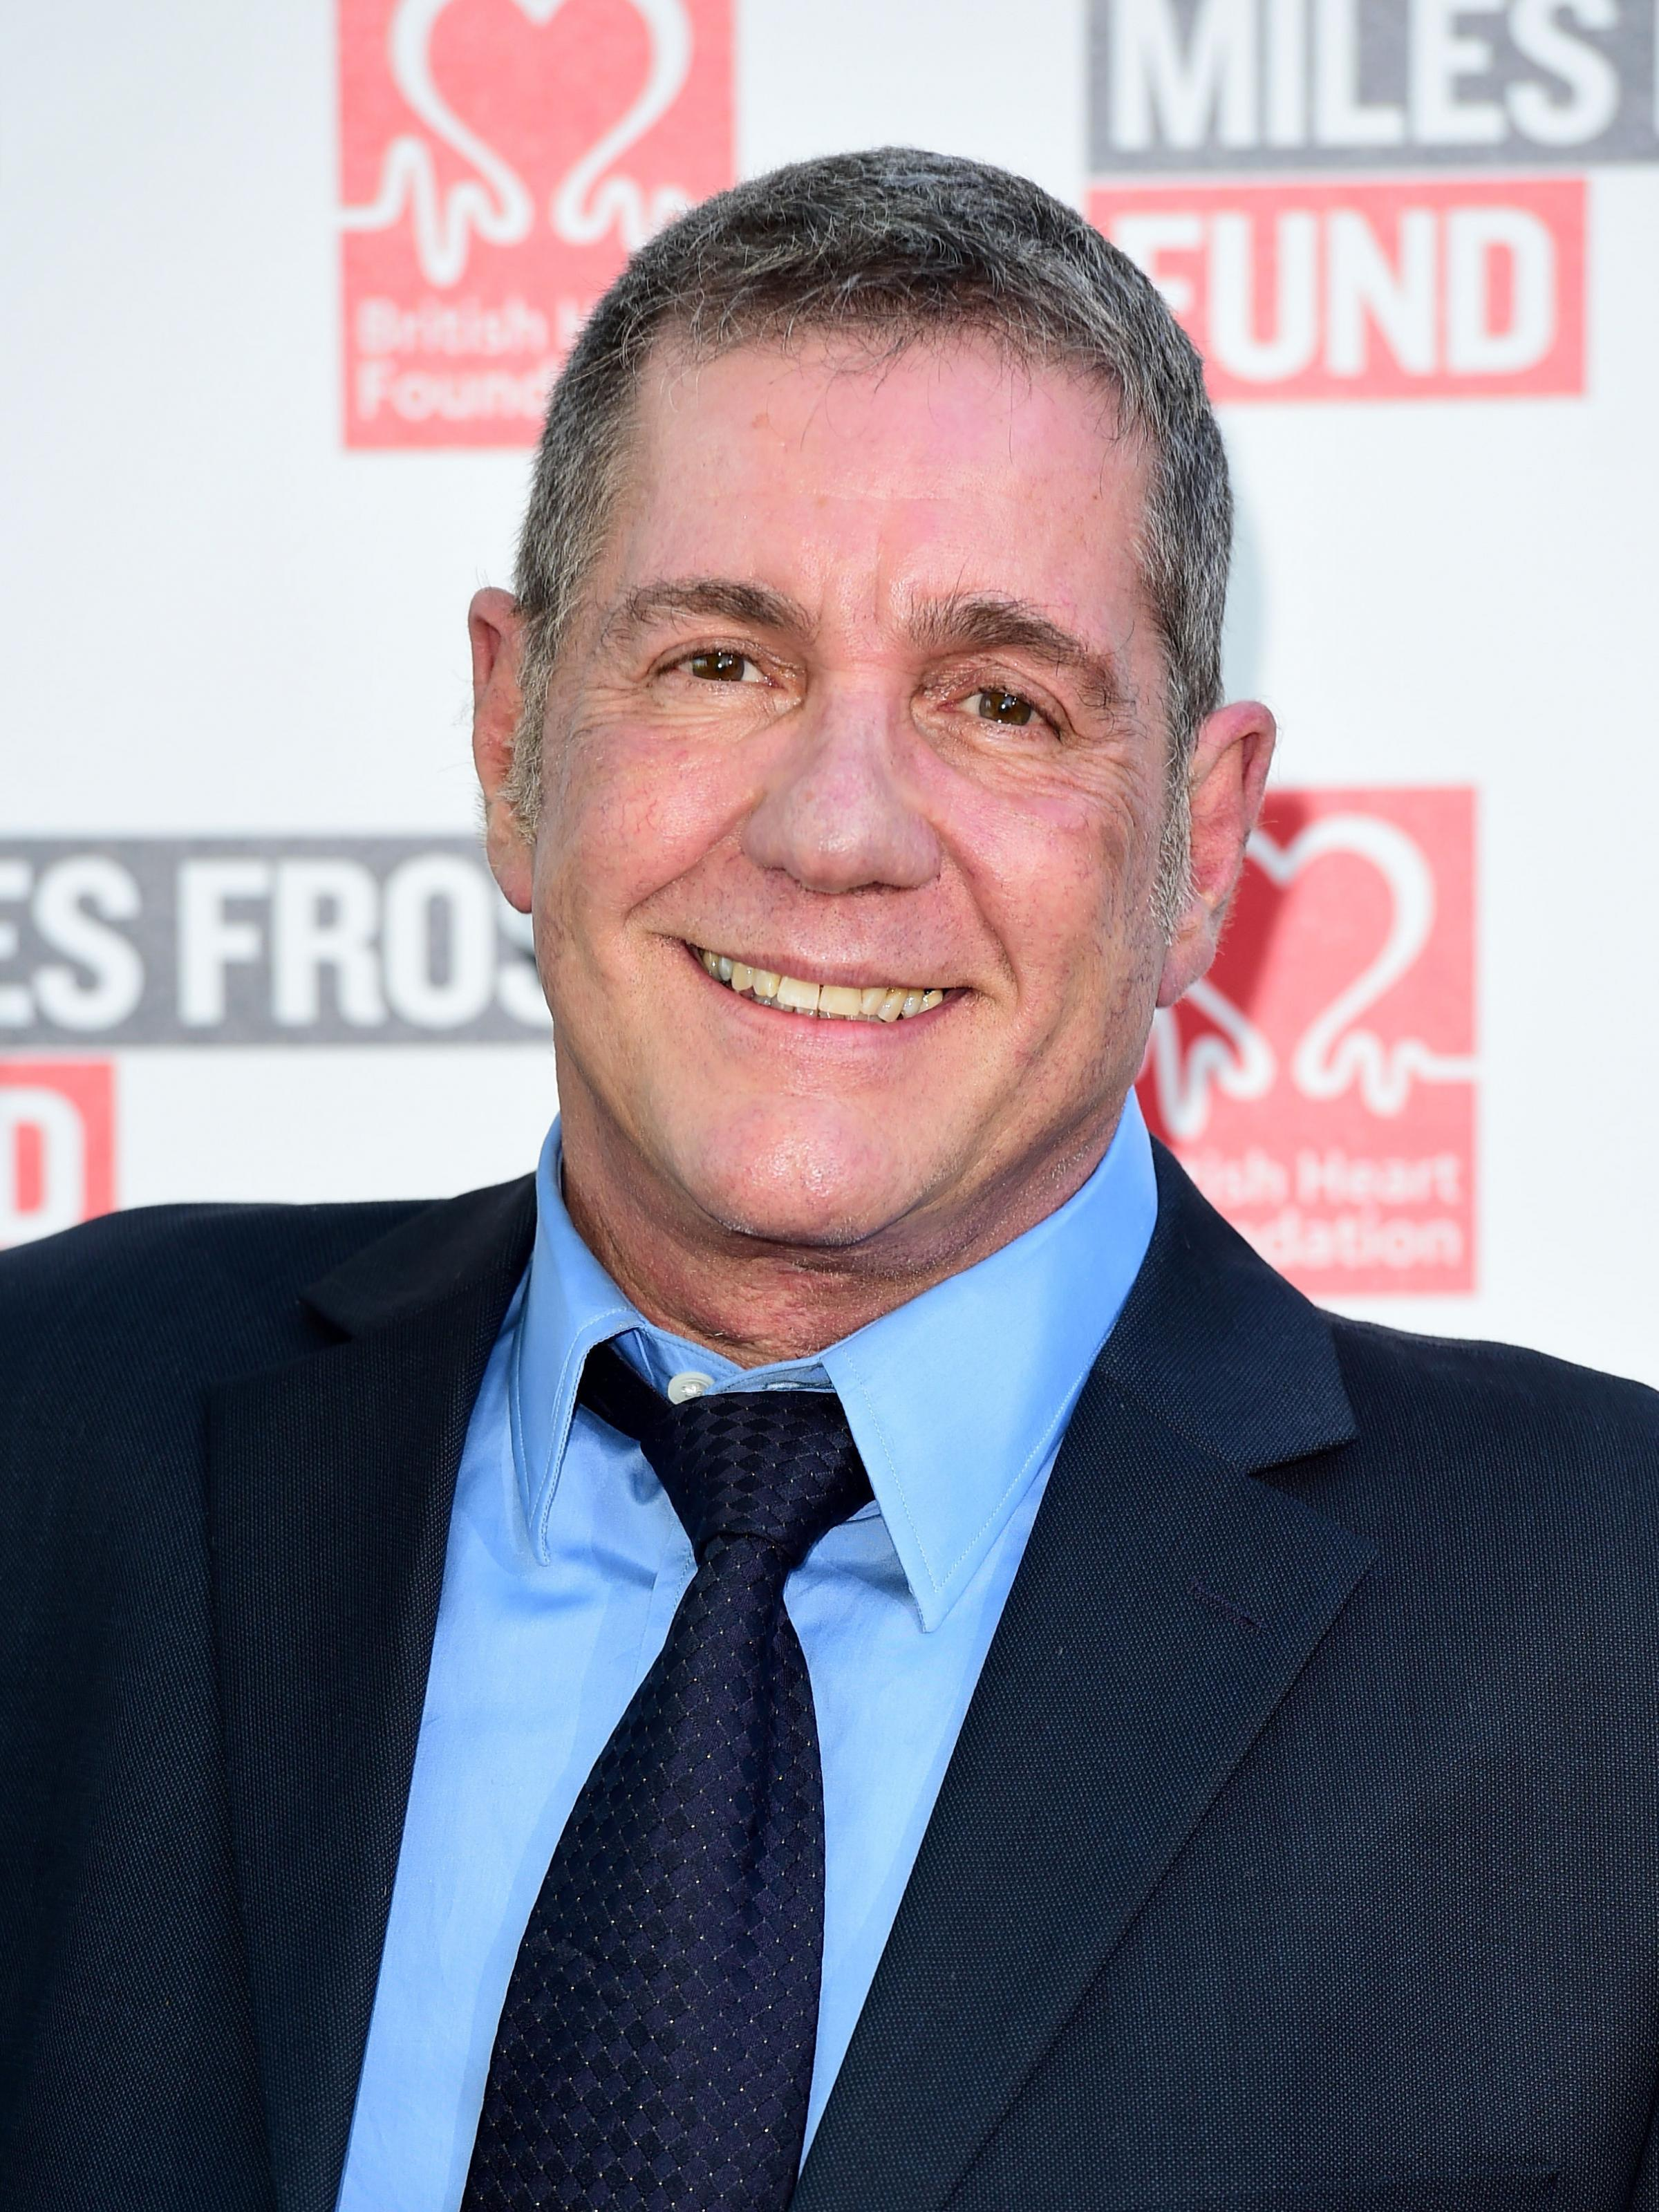 Dale Winton attending the Frost Summer Party Fundraiser in London. Picture by Ian West/PA Wire.